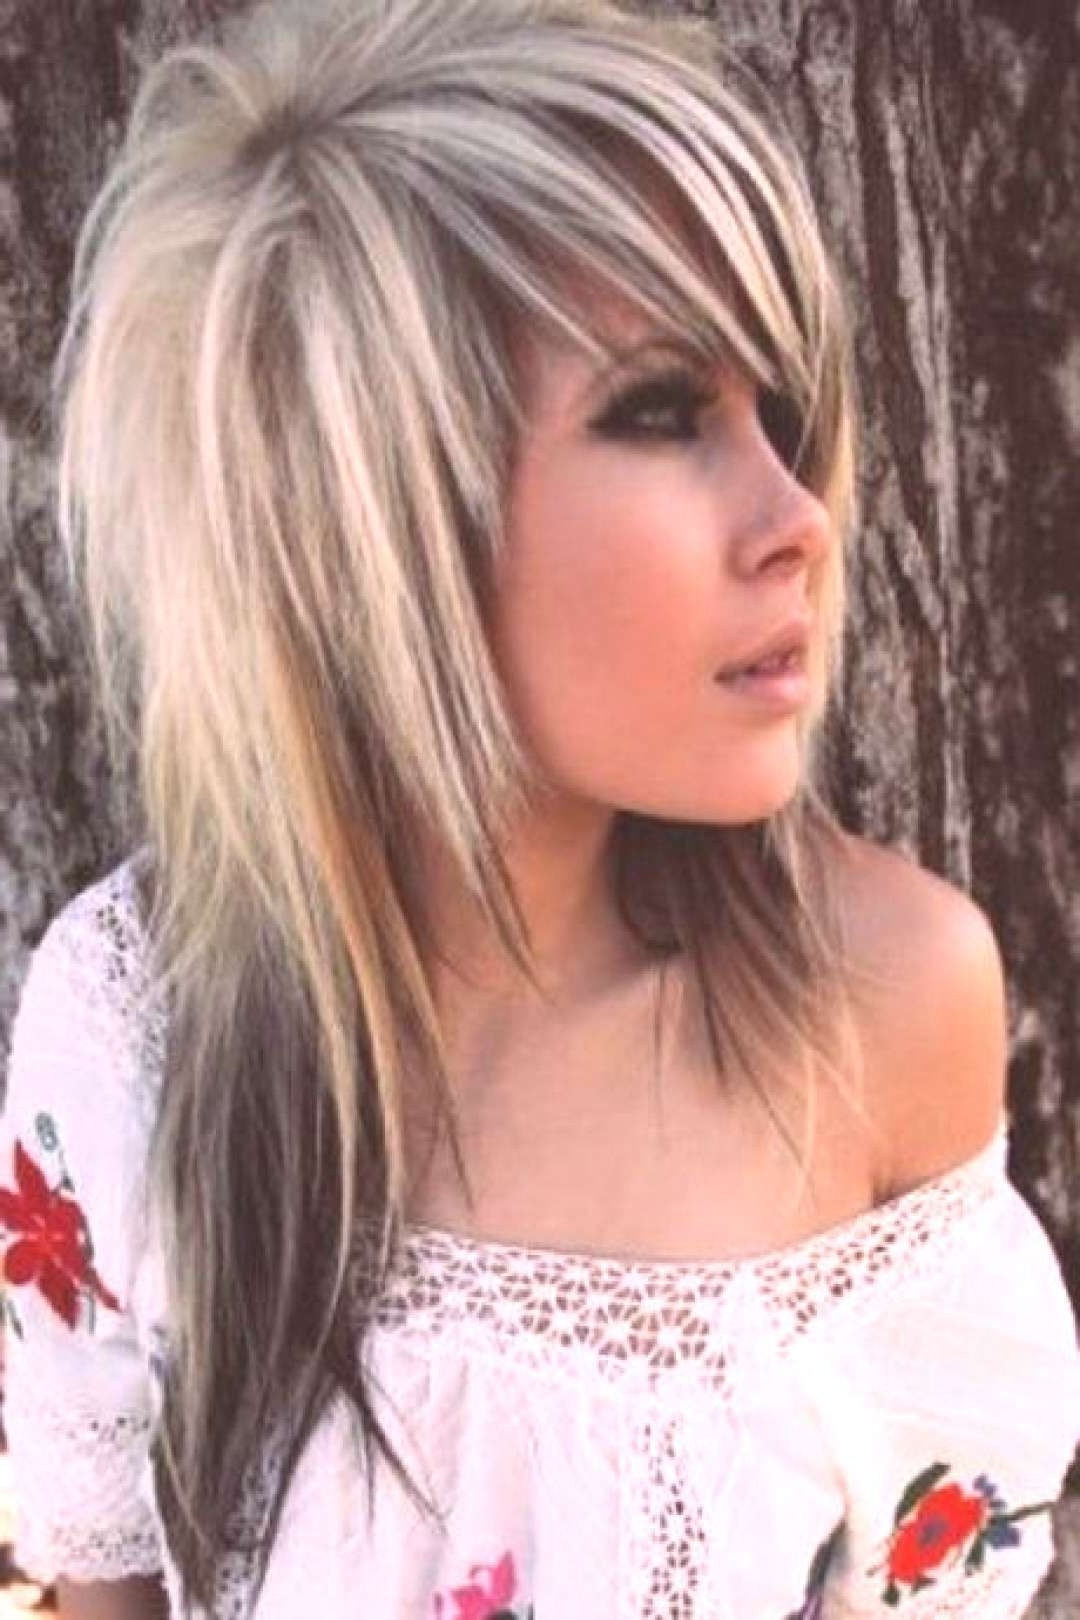 Emo Haircuts For Girls With Long Hair Emo Haircuts For 40+ Stylish Emo Hairstyles Medium Length Hair